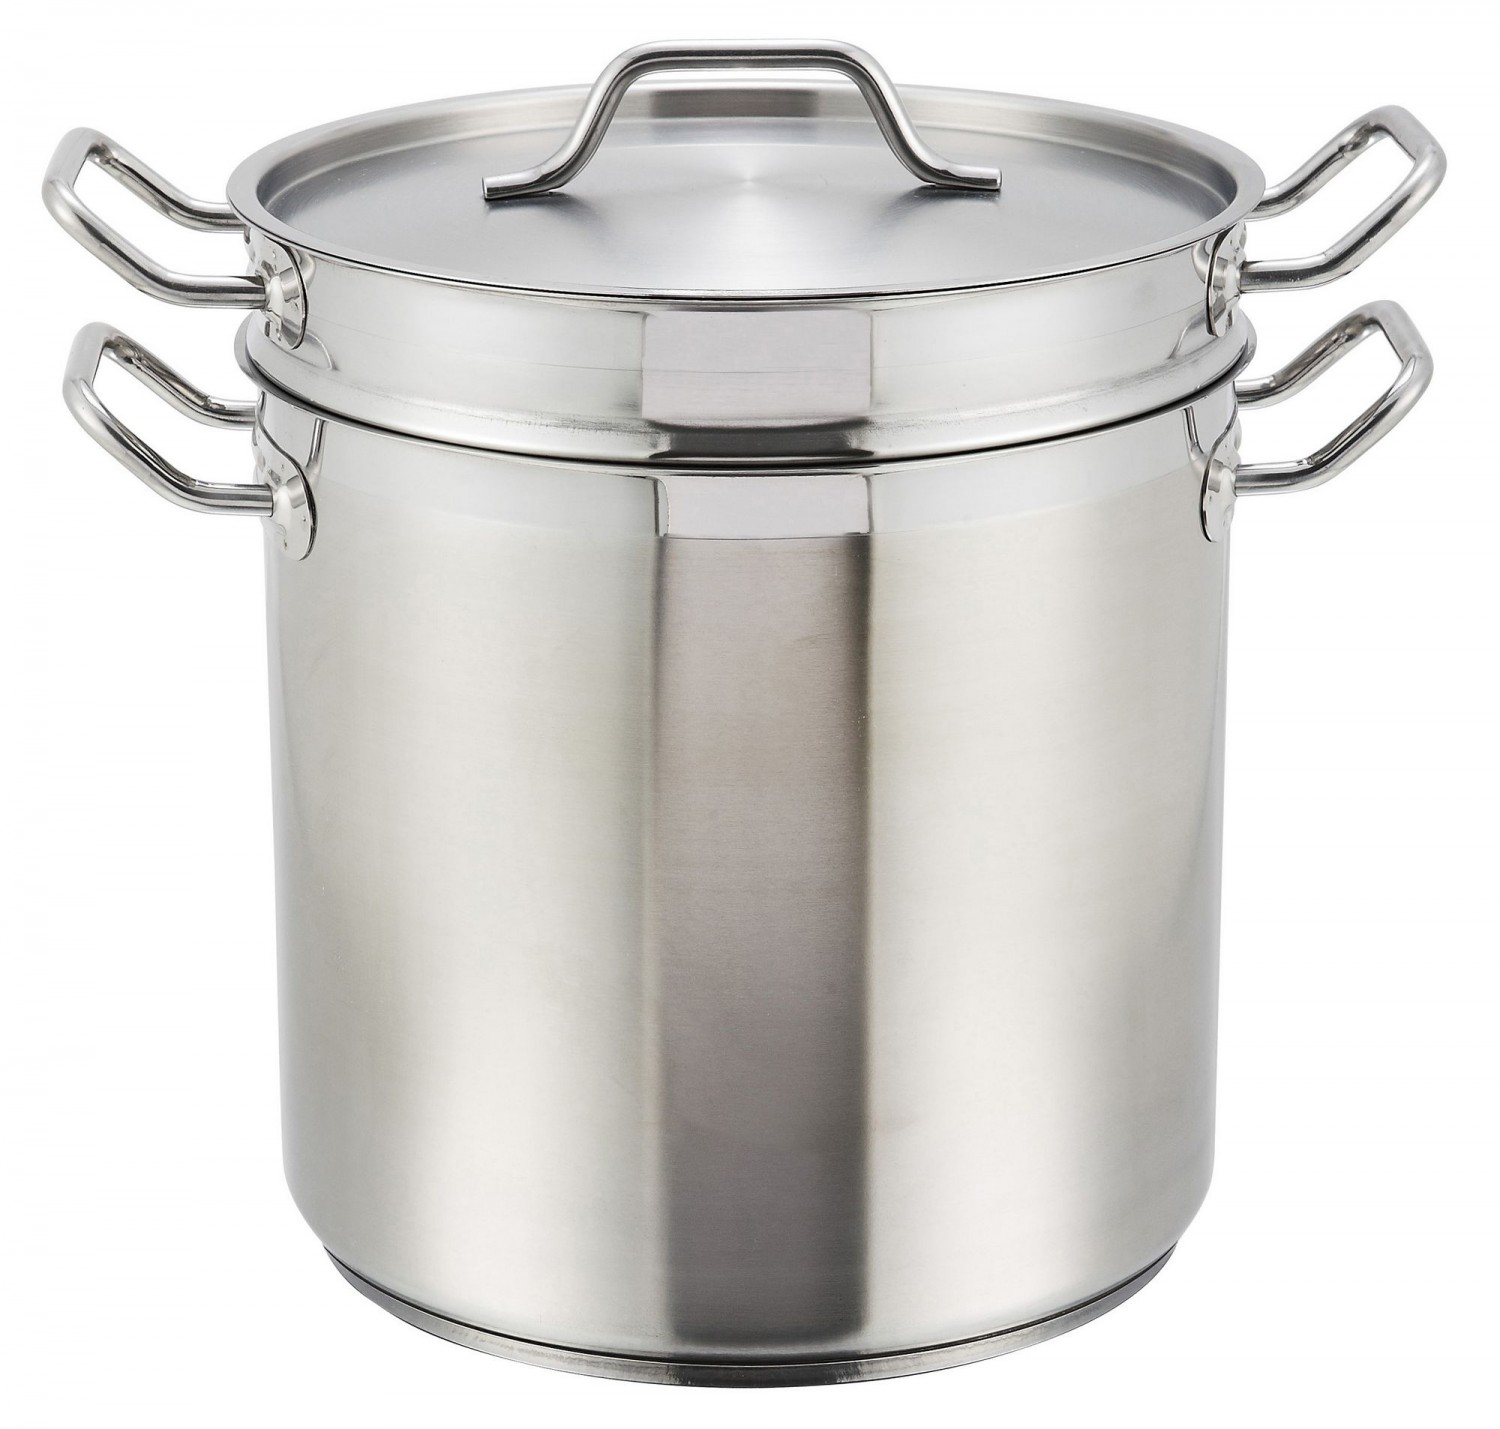 Winco SSDB-12S Premium Stainless Steel Steamer / Pasta Cooker with Cover 12 Qt.